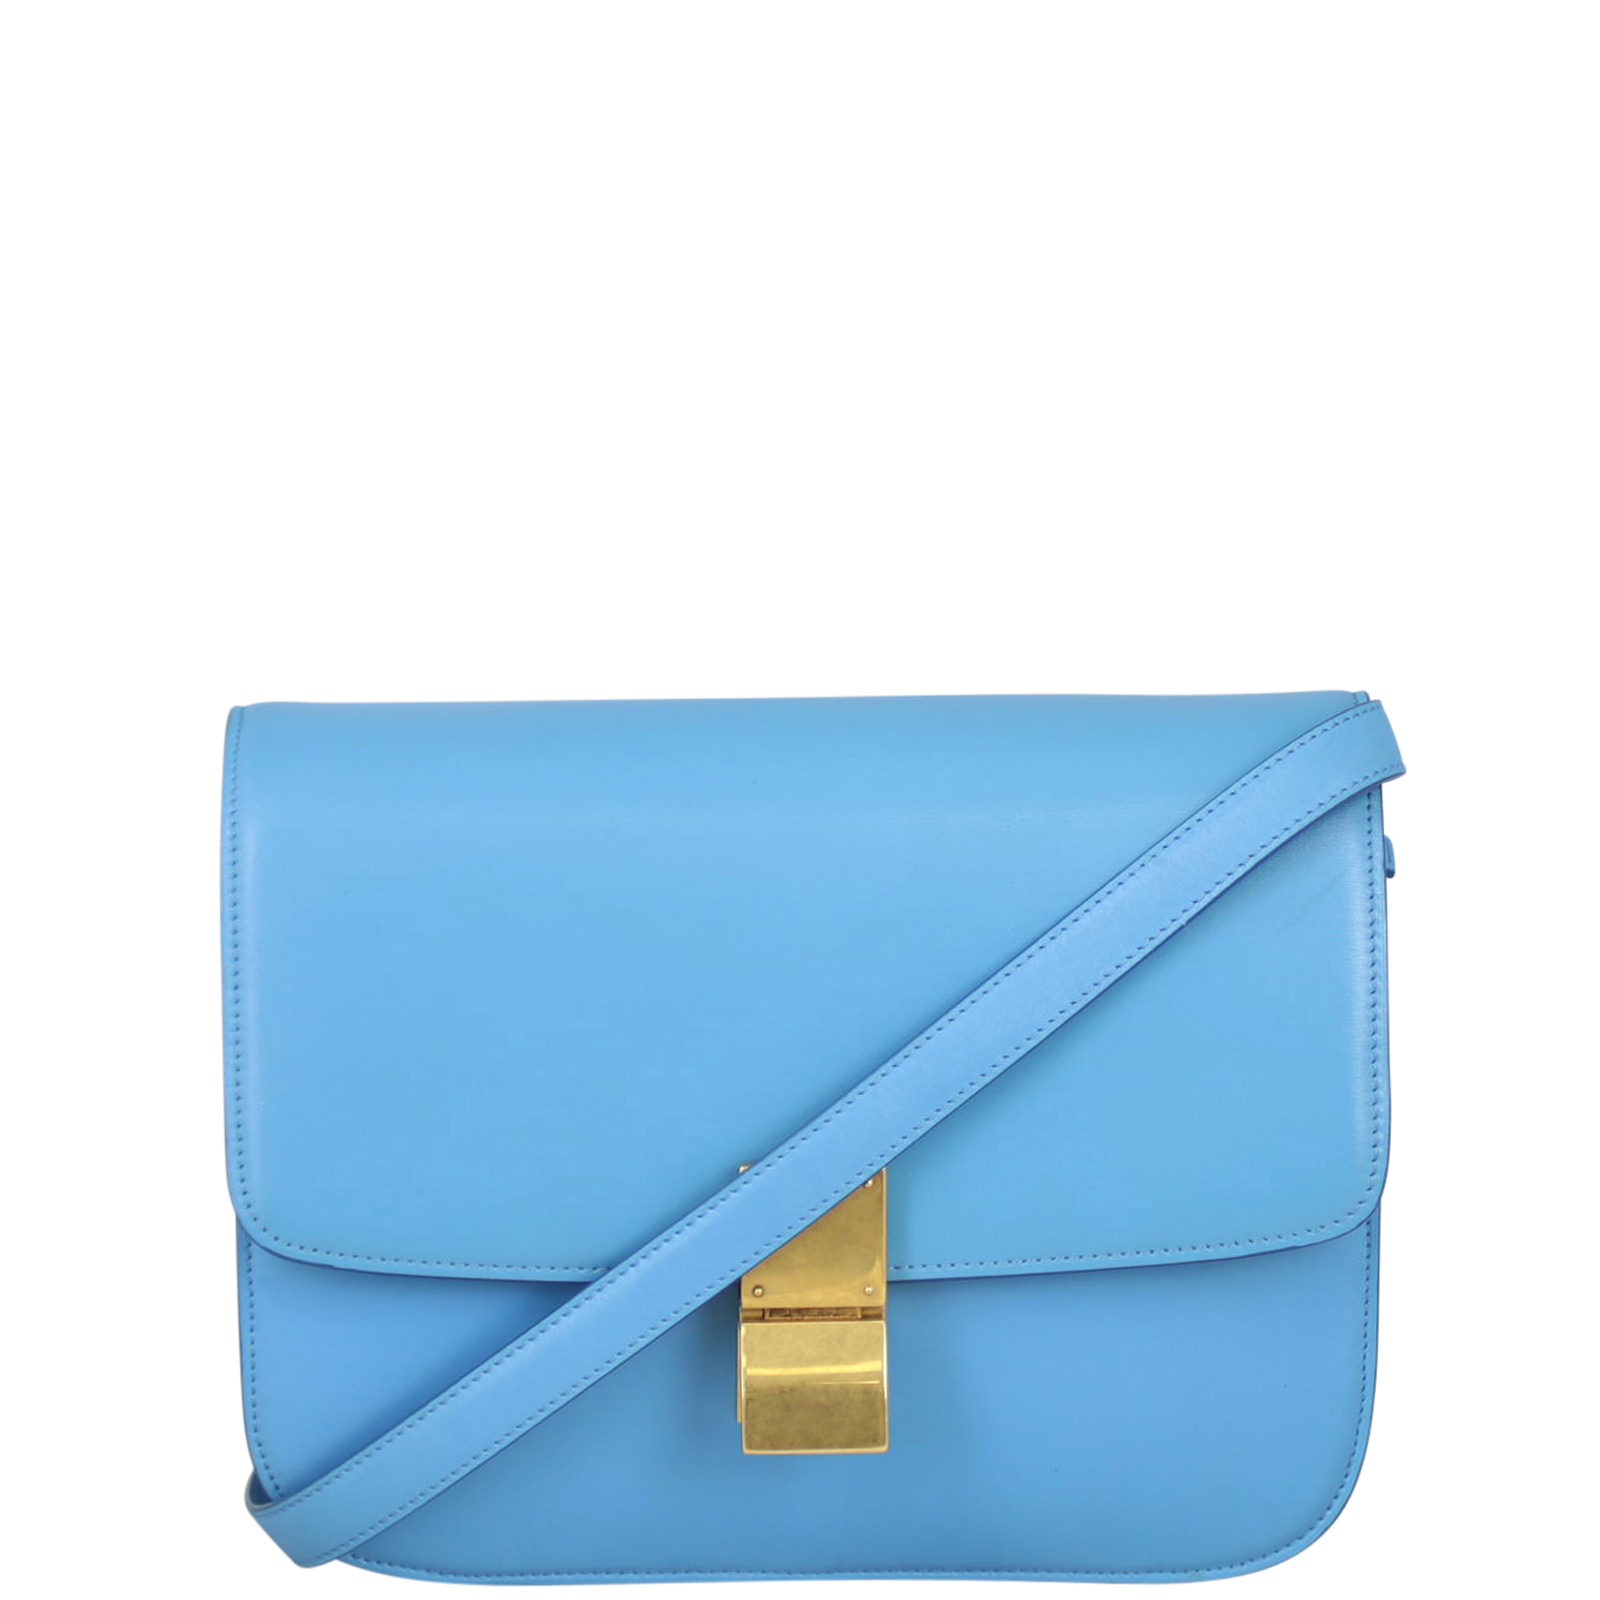 The ultimate must-have from Celine! As the name suggests, this bag is truly a classic in every sense